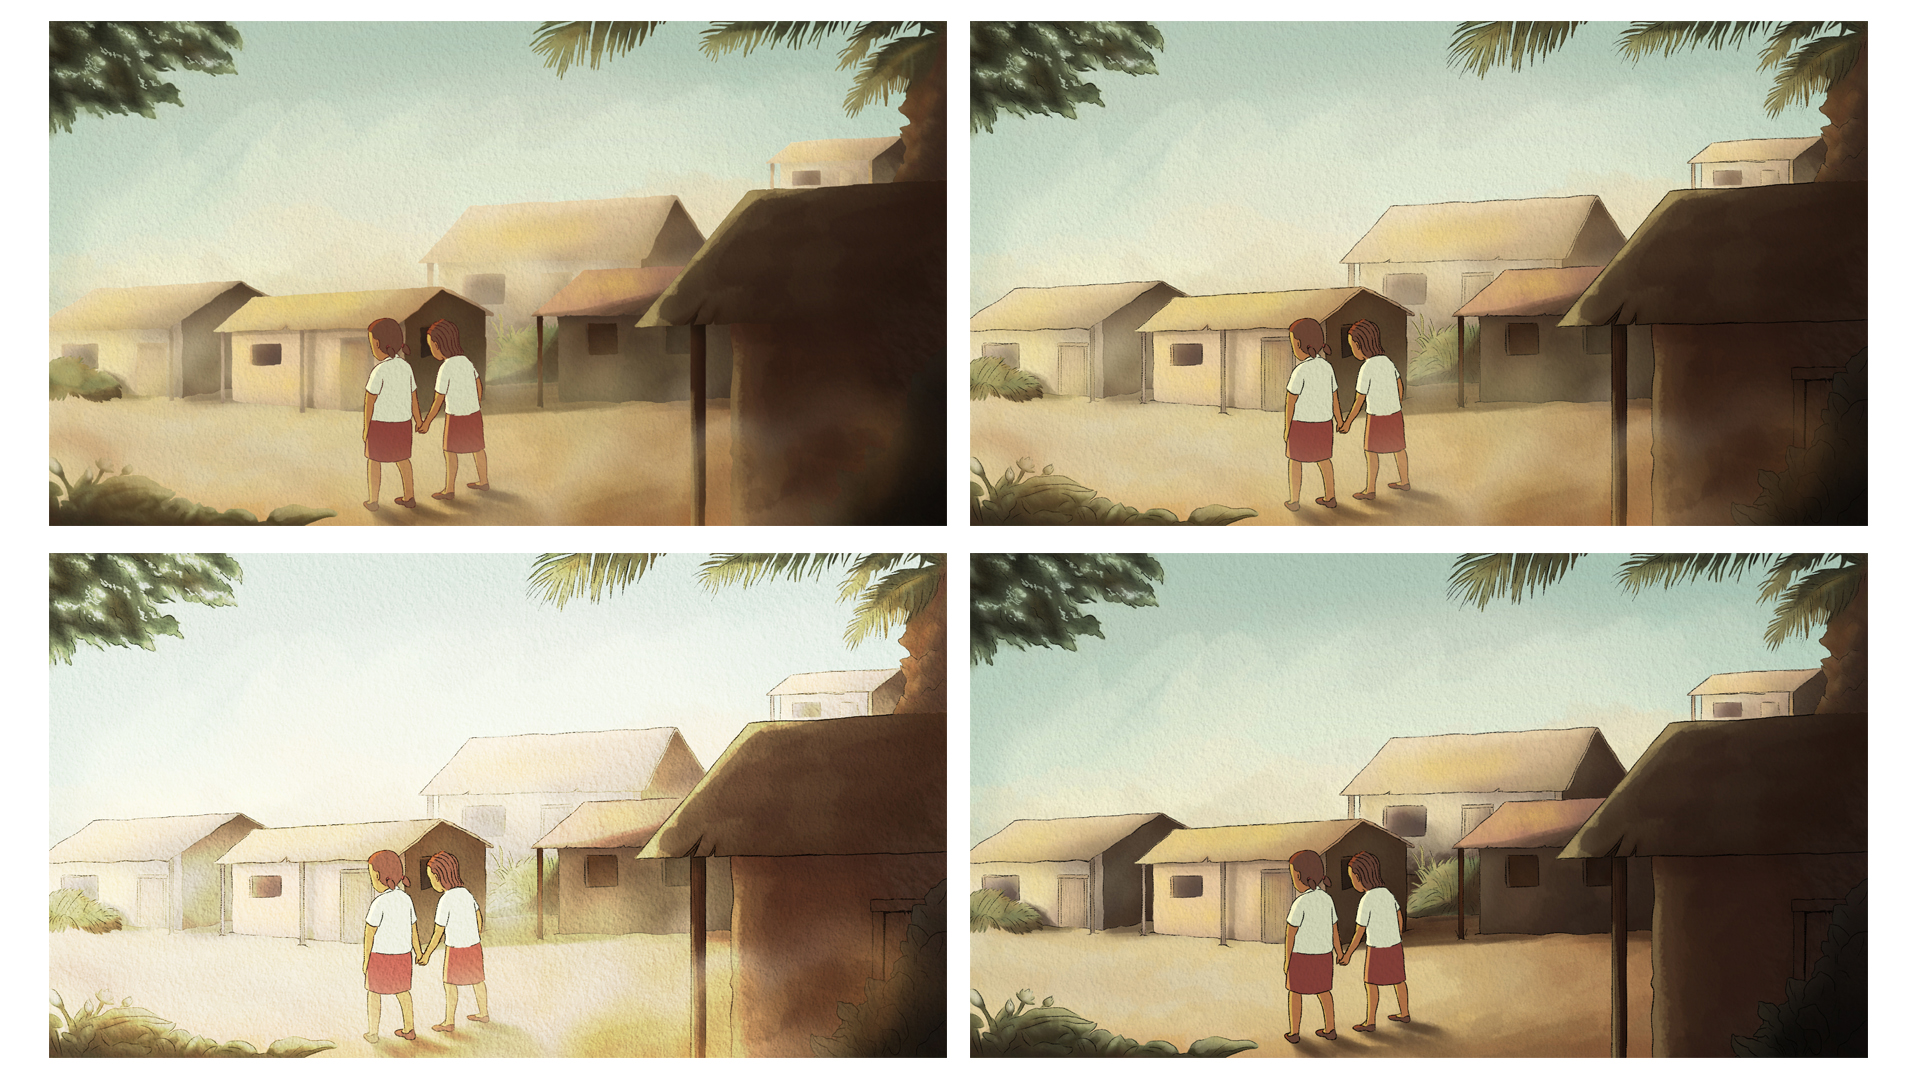 Background Development